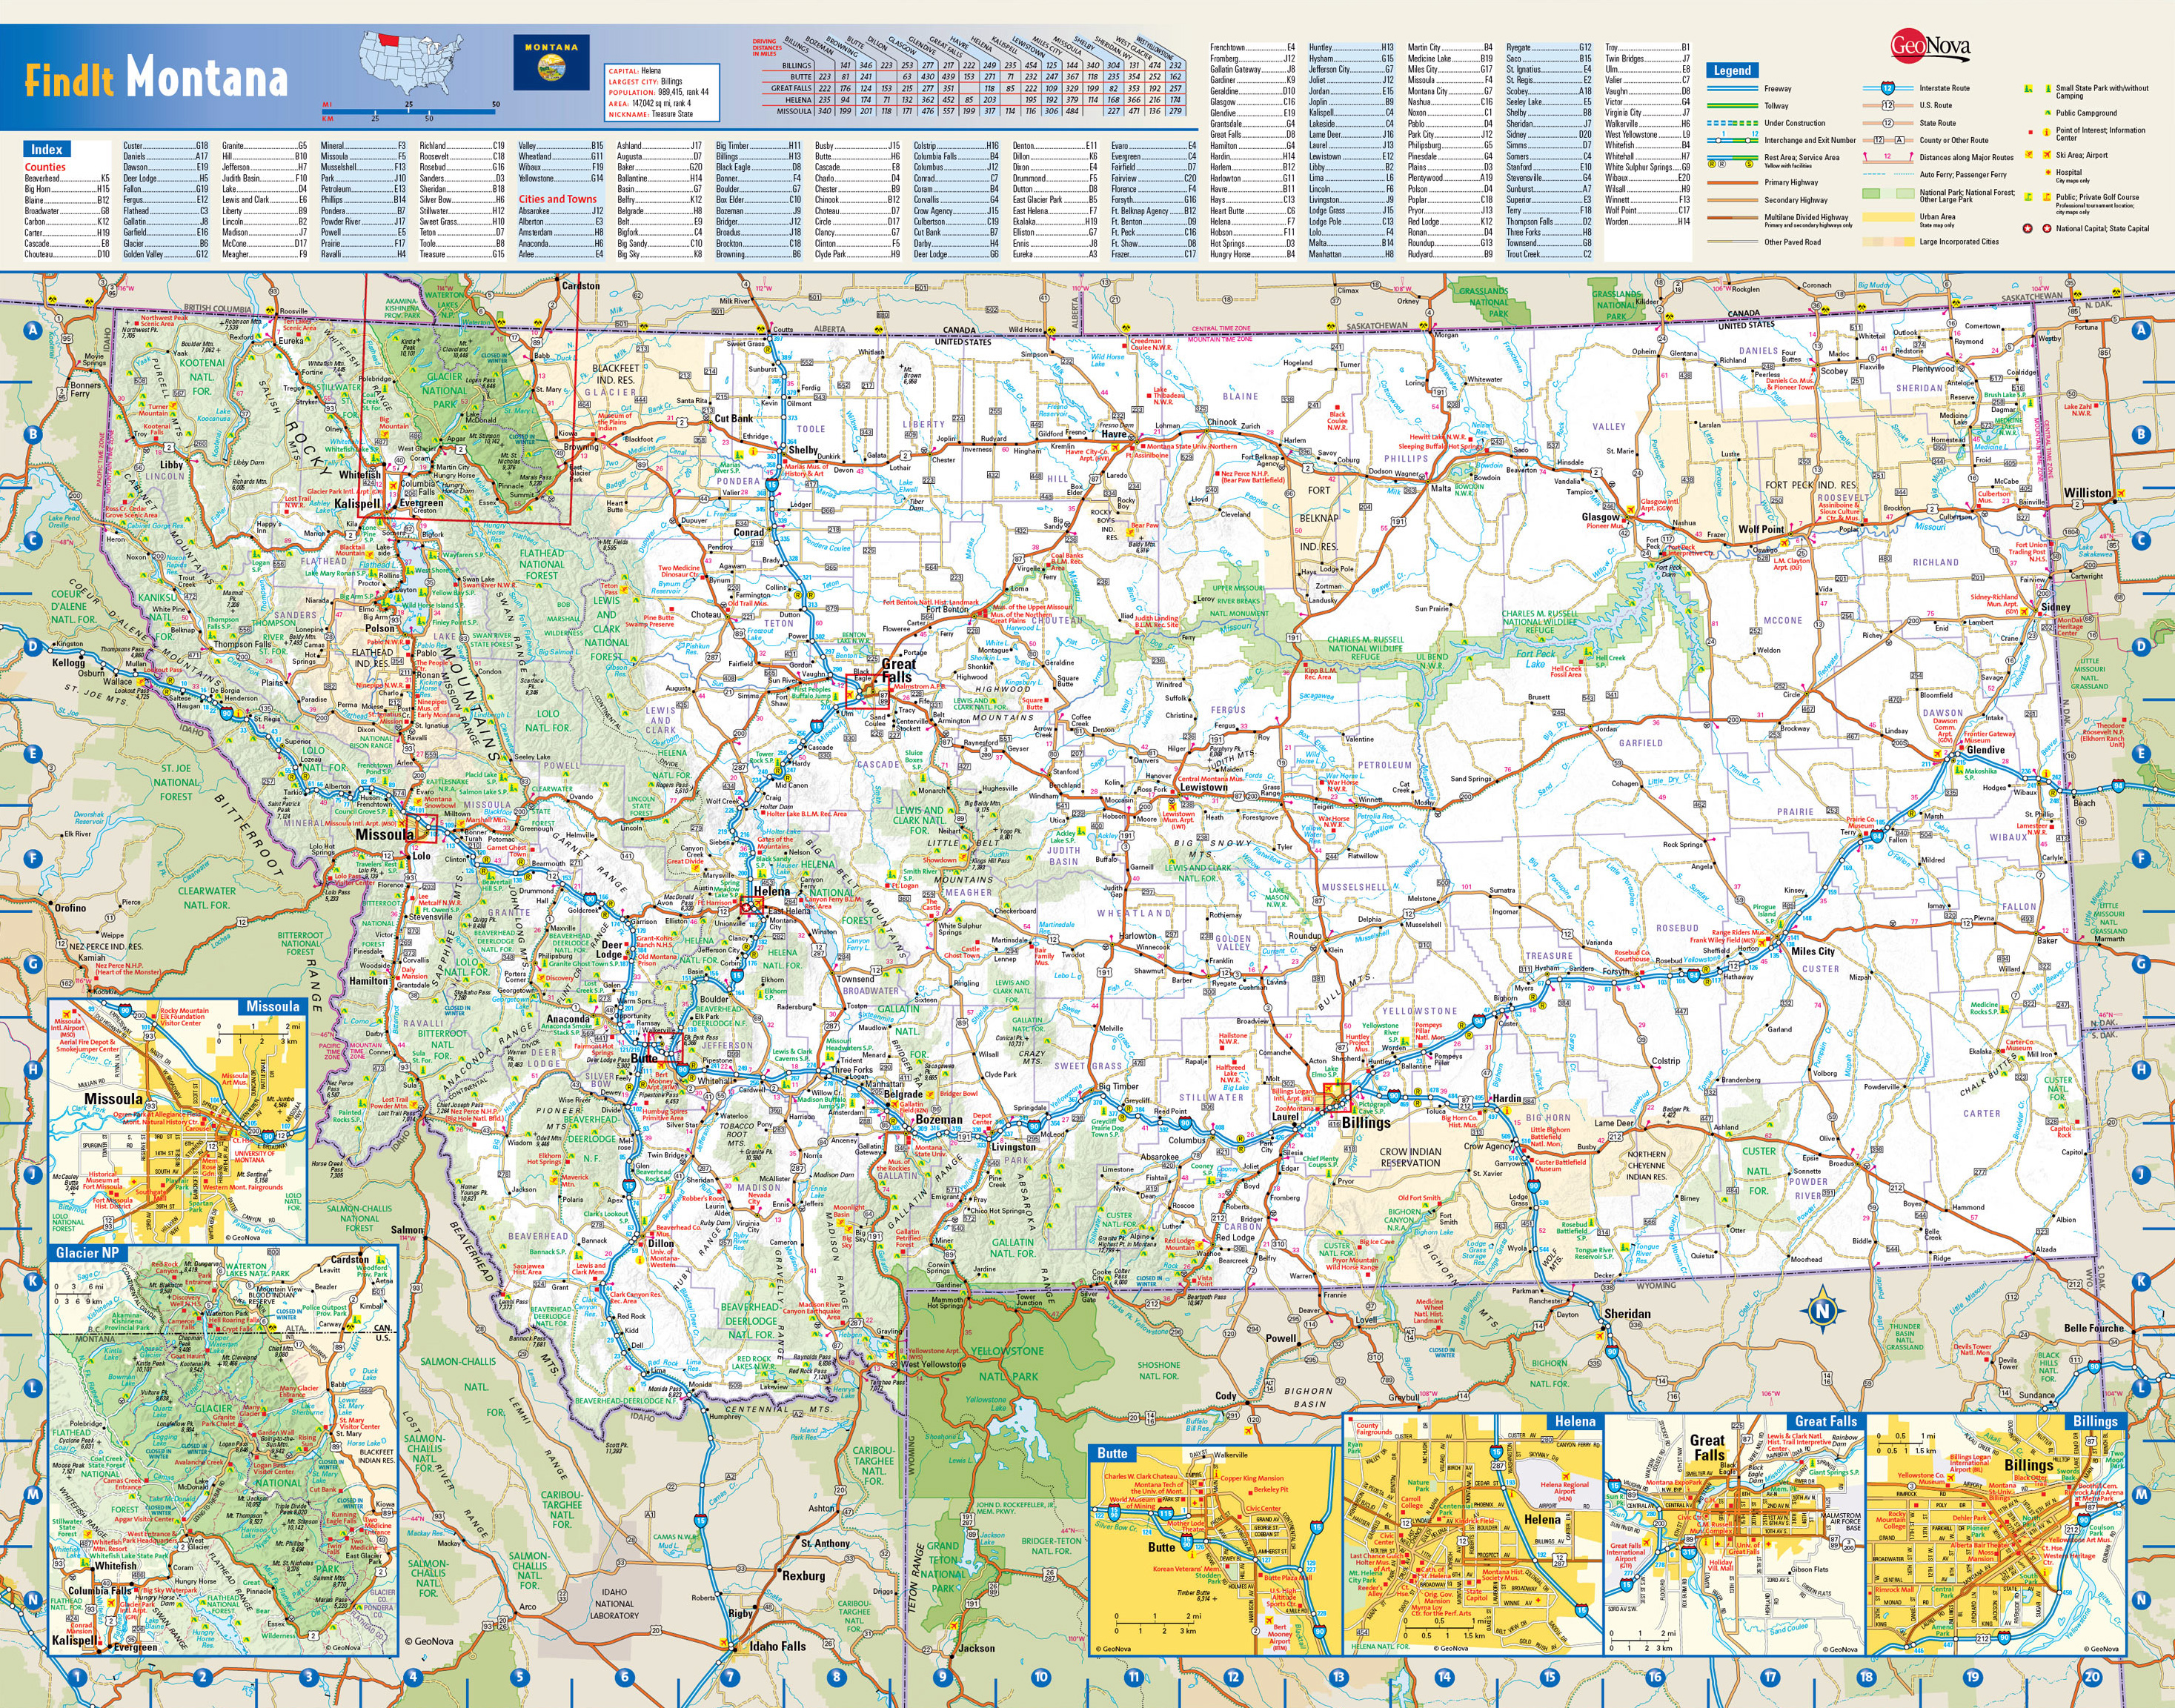 Large Detailed Roads And Highways Map Of Montana State With - Map of montana cities